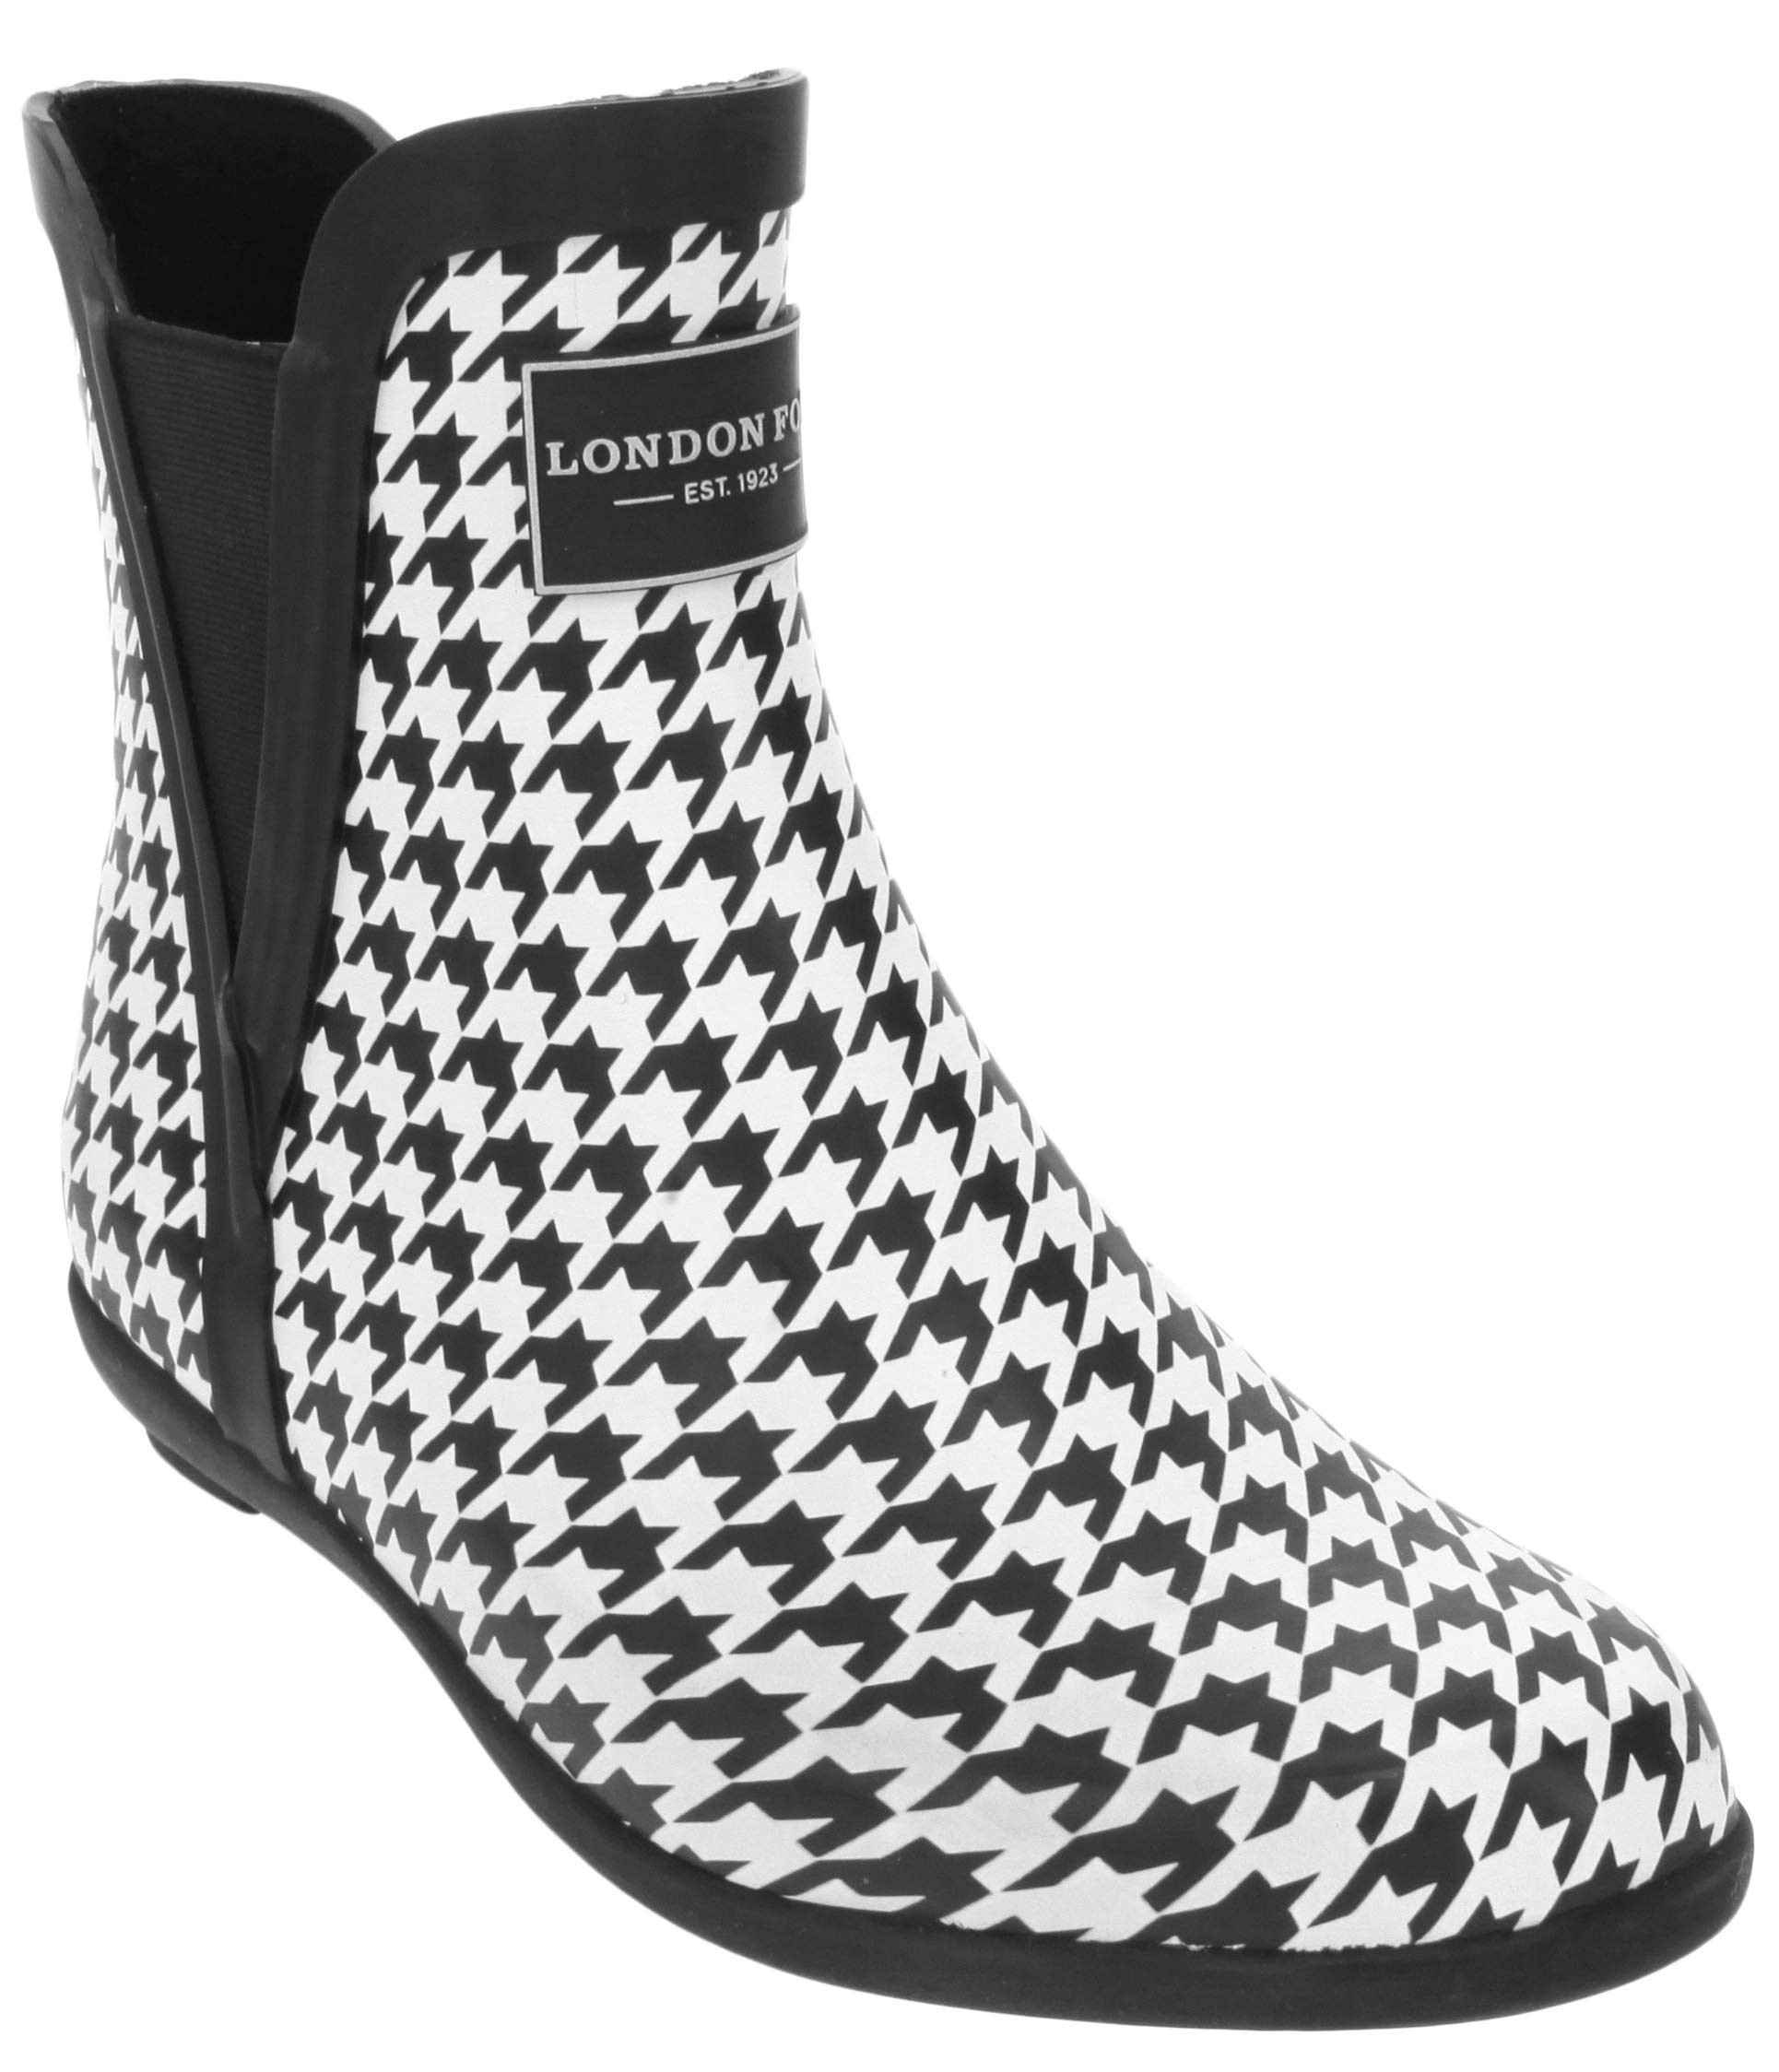 London Fog Womens Piccadilly Rain Boot Houndsthooth 6 M US